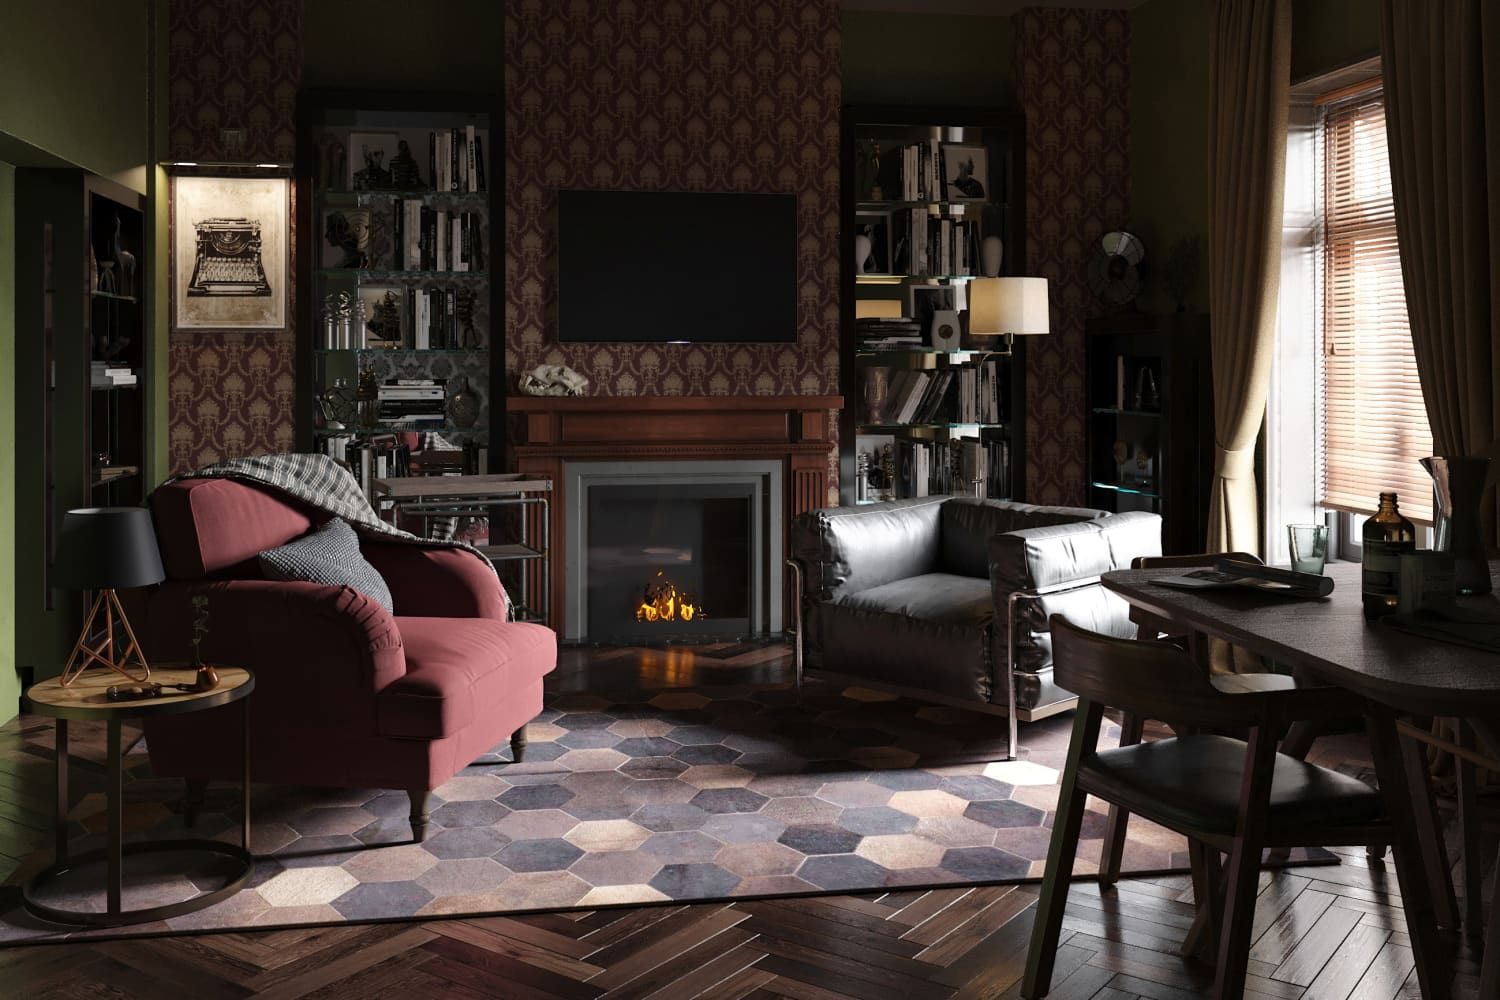 Rooms From Classic British Movies And Tv Shows Reimagined In 2020 British Movies Living Room Designs English Interior Design